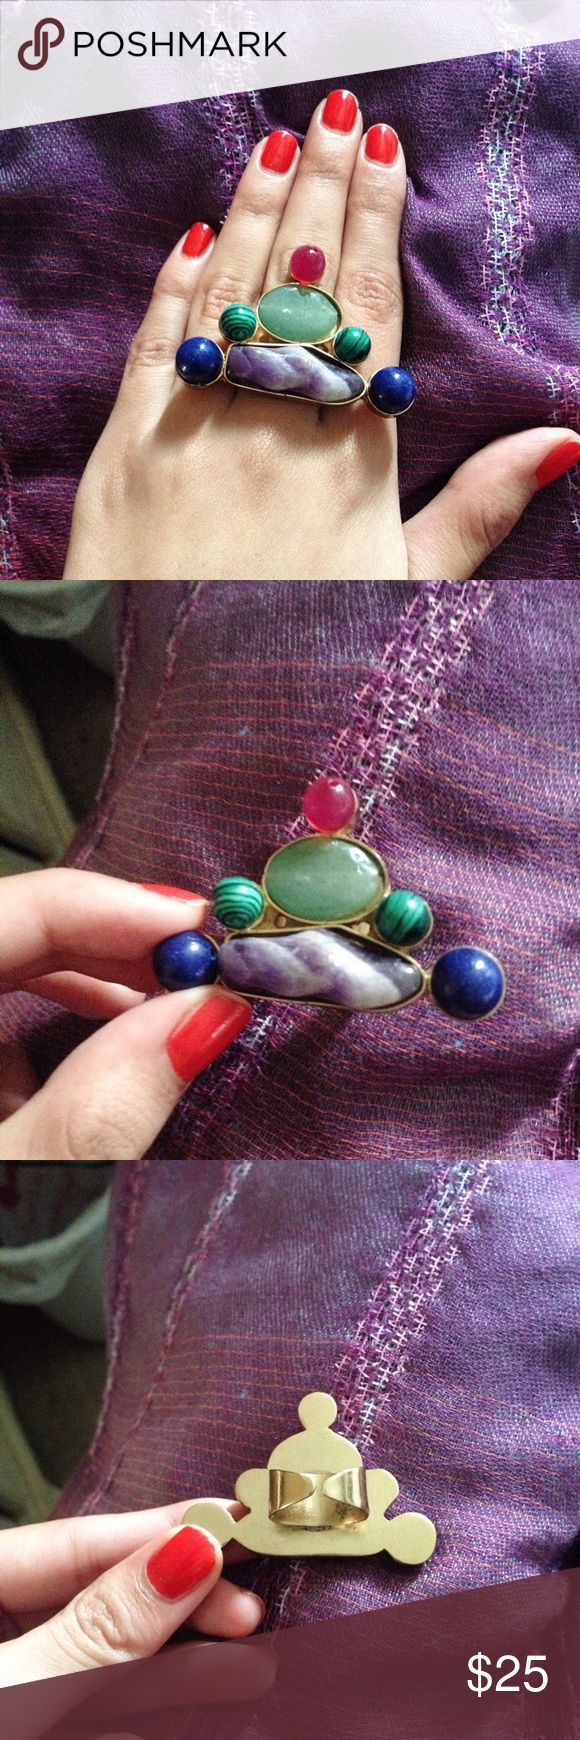 Quartz ring 🔮 Stunning statement ring that includes many healing quartz/gemstones that include Lapis, green aventurine, carnelian, amethyst, and green malachite! Got this gorgeous ring in San Francisco in a natural crystal/quartz shop. Never really got to wear it. Make it yours, it's also adjustable! Perfect condition! Guarantee complements. Not Anthropologie 🎉Bundle & Save🎉 Anthropologie Jewelry Rings